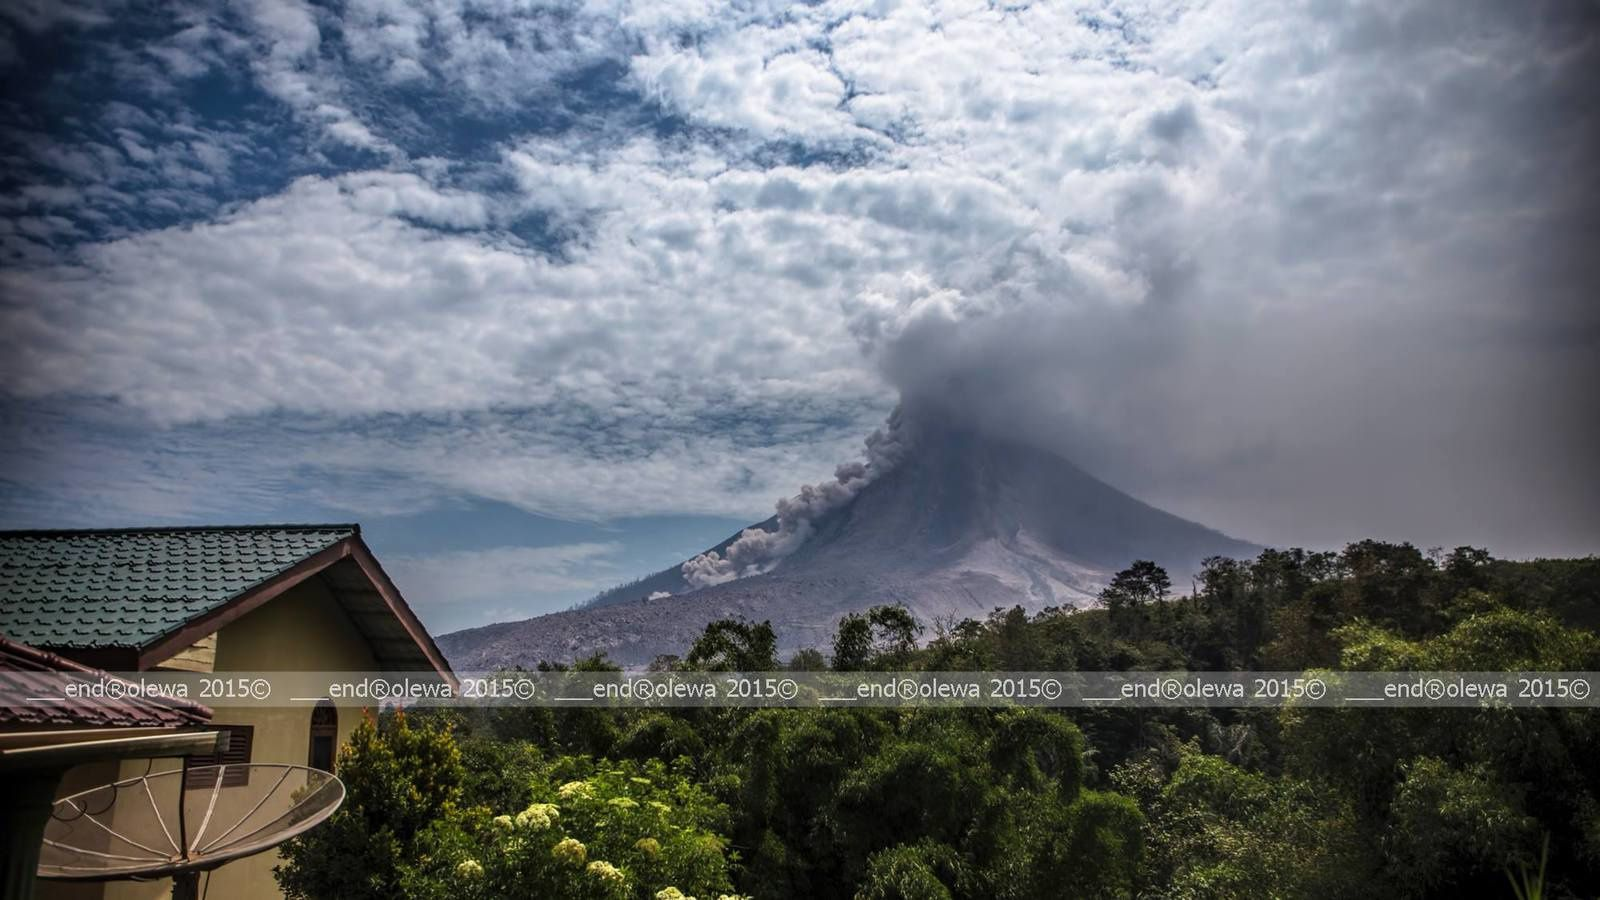 Sinabung 30.07.2015 / 13h55 secteur SSE - photo endrolew@